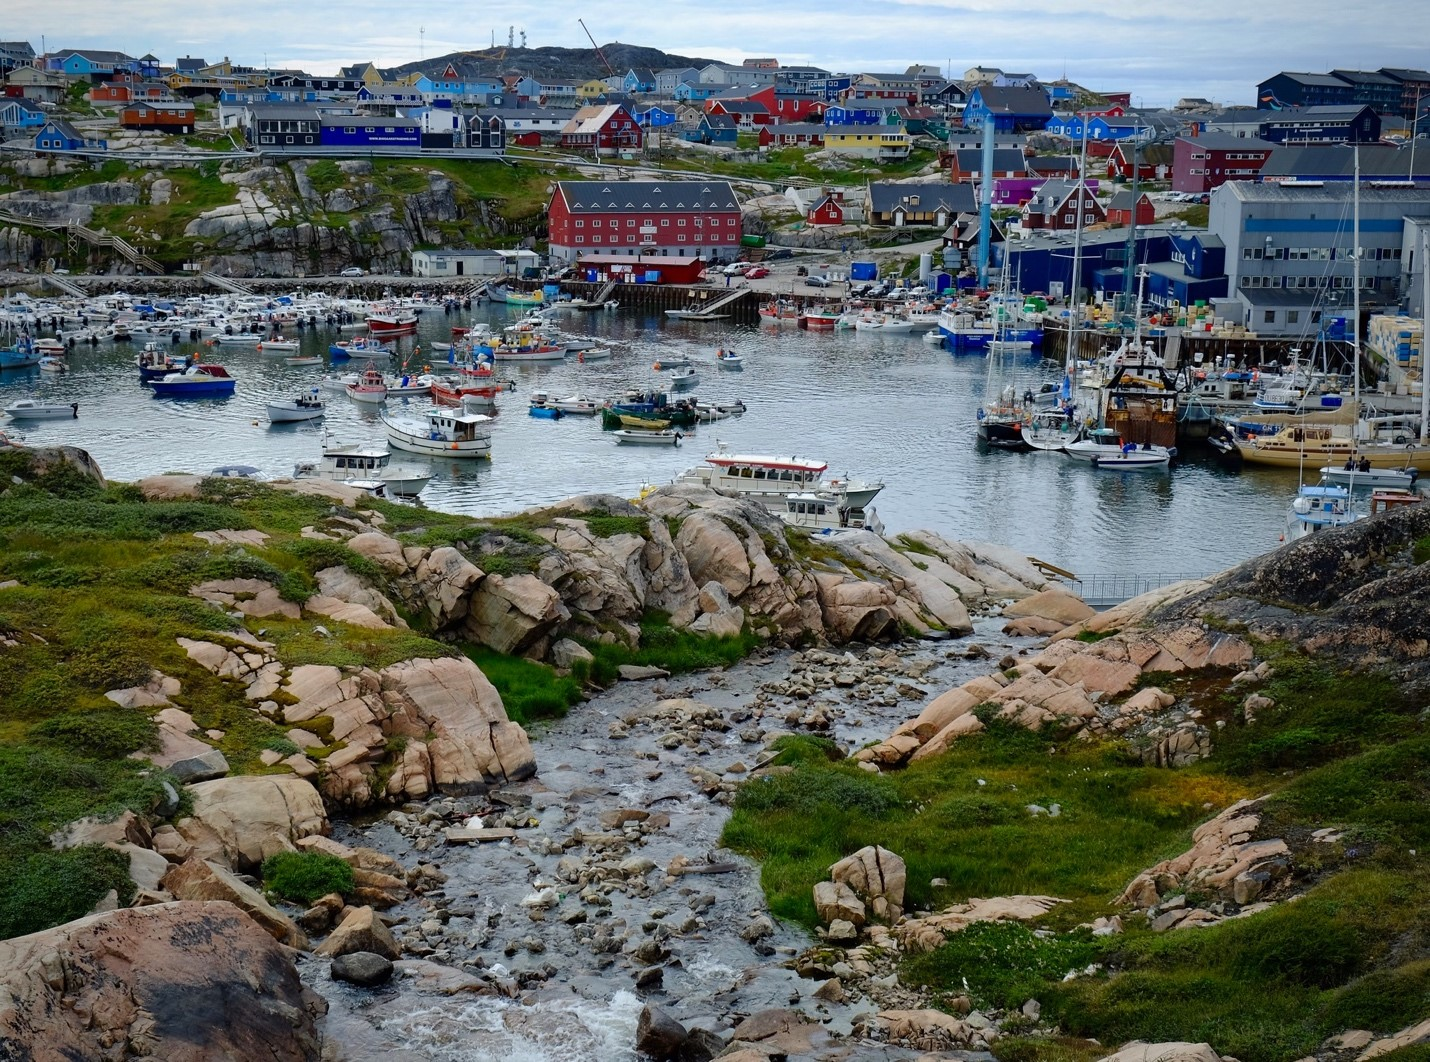 QGreenland aims to serve the needs of researchers, educators, and Greenland residents, like those in the coastal community of Ilulissat.